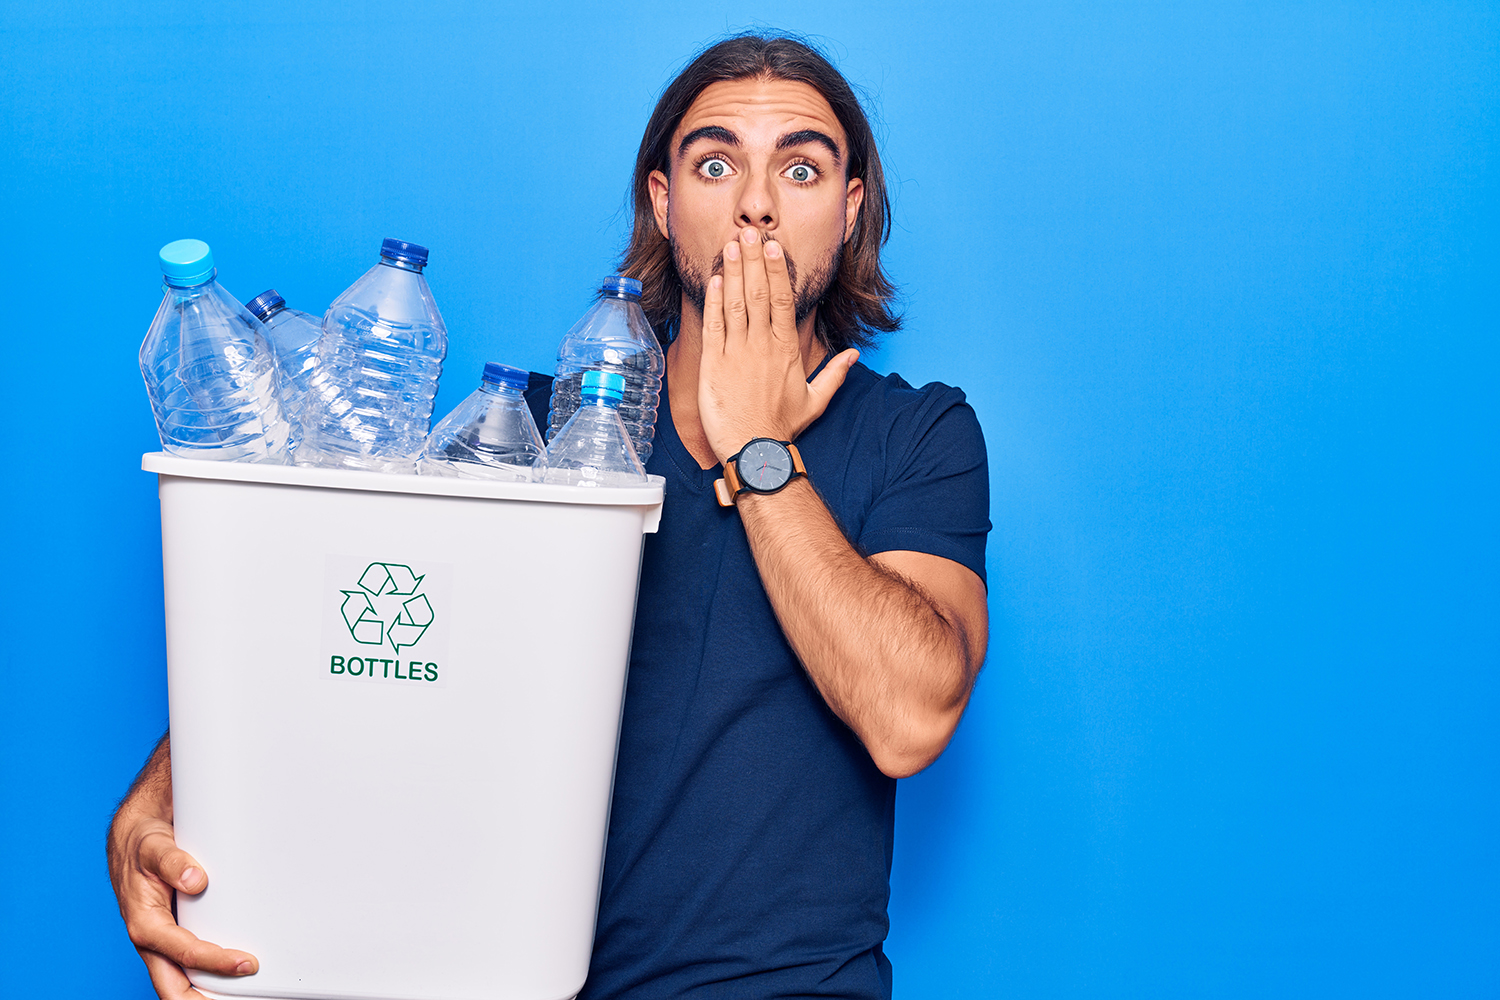 The truth about recycling plastic bottles